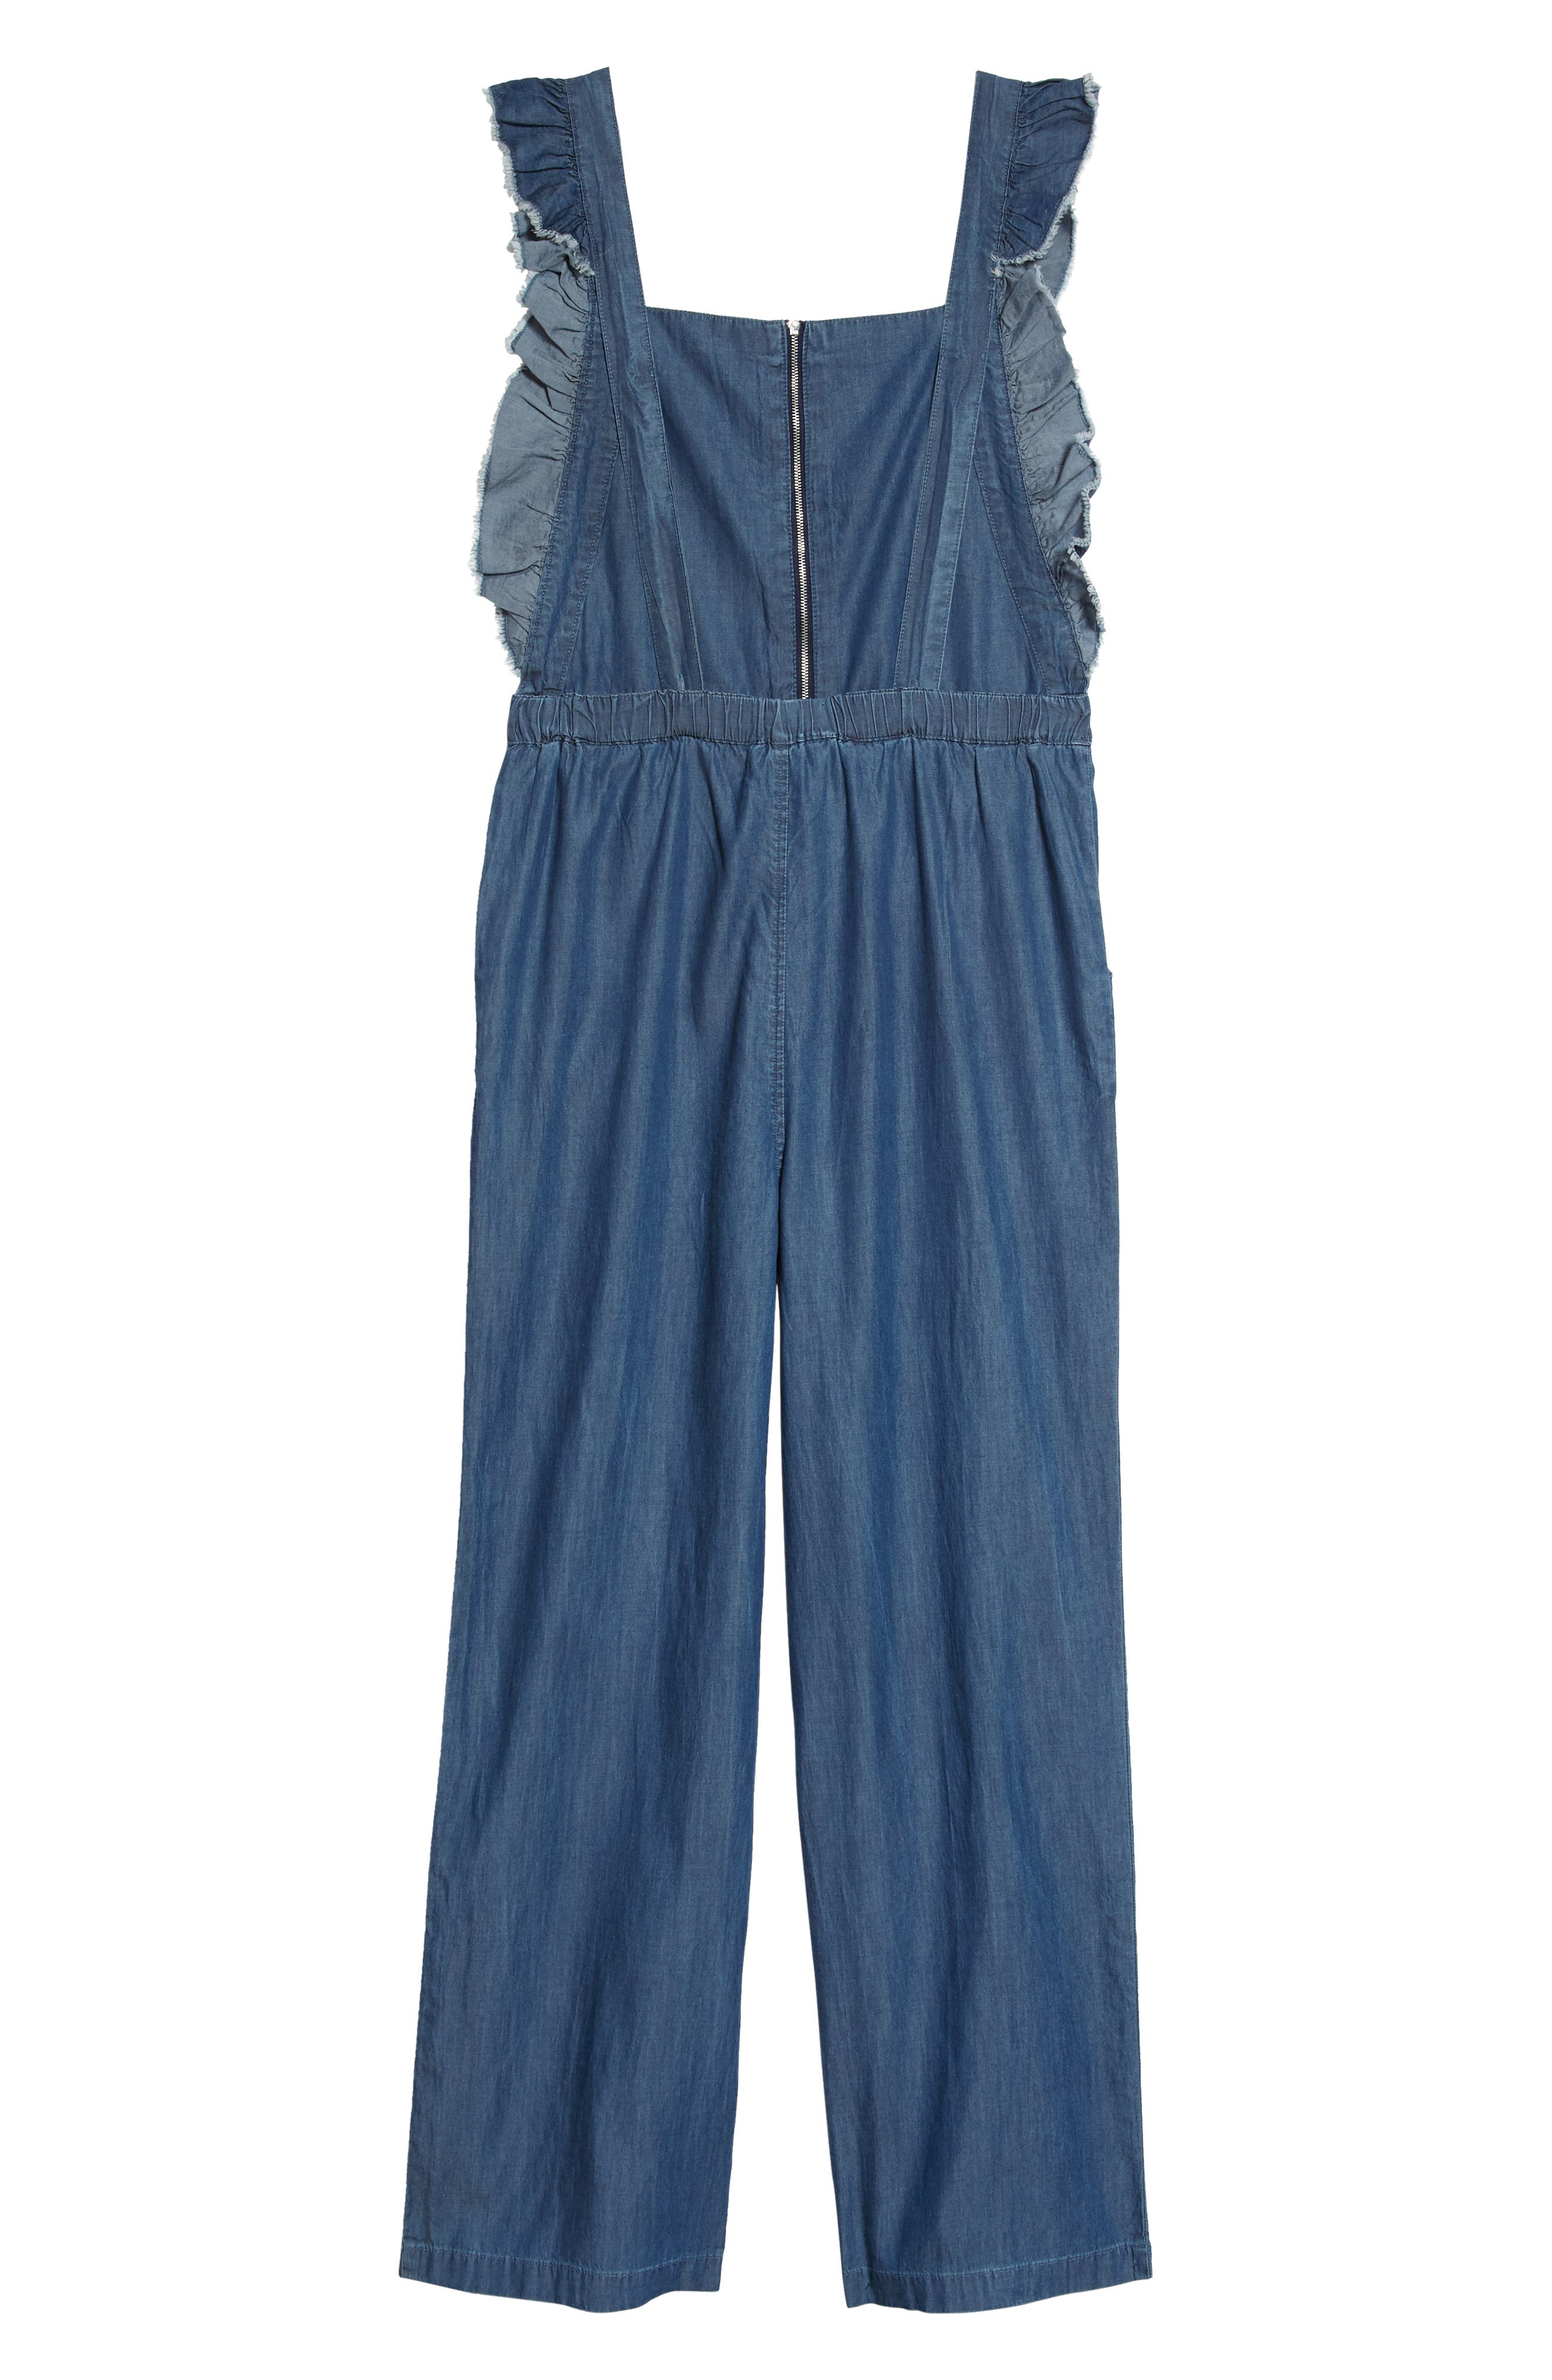 Ruffle Sleeve Denim Jumpsuit,                             Alternate thumbnail 2, color,                             Denim